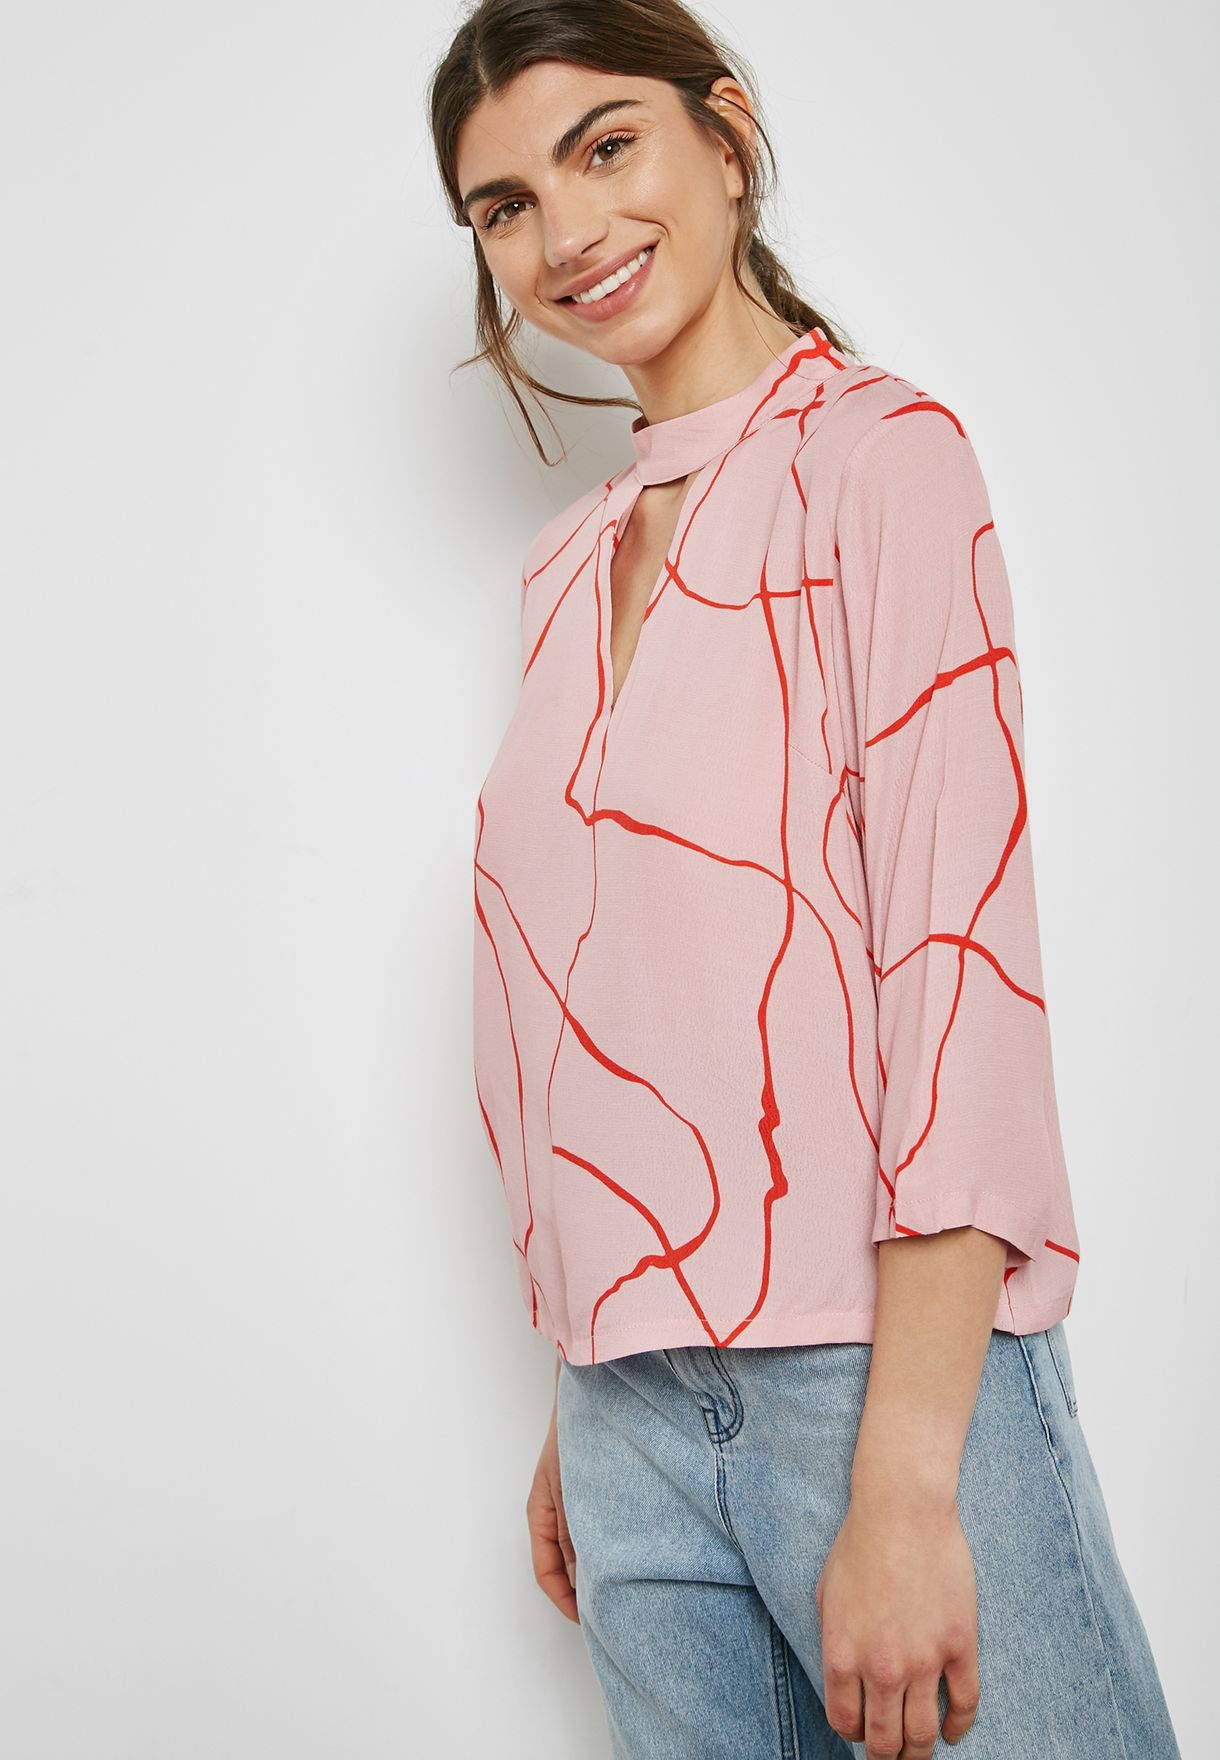 Choker Neck Printed Top